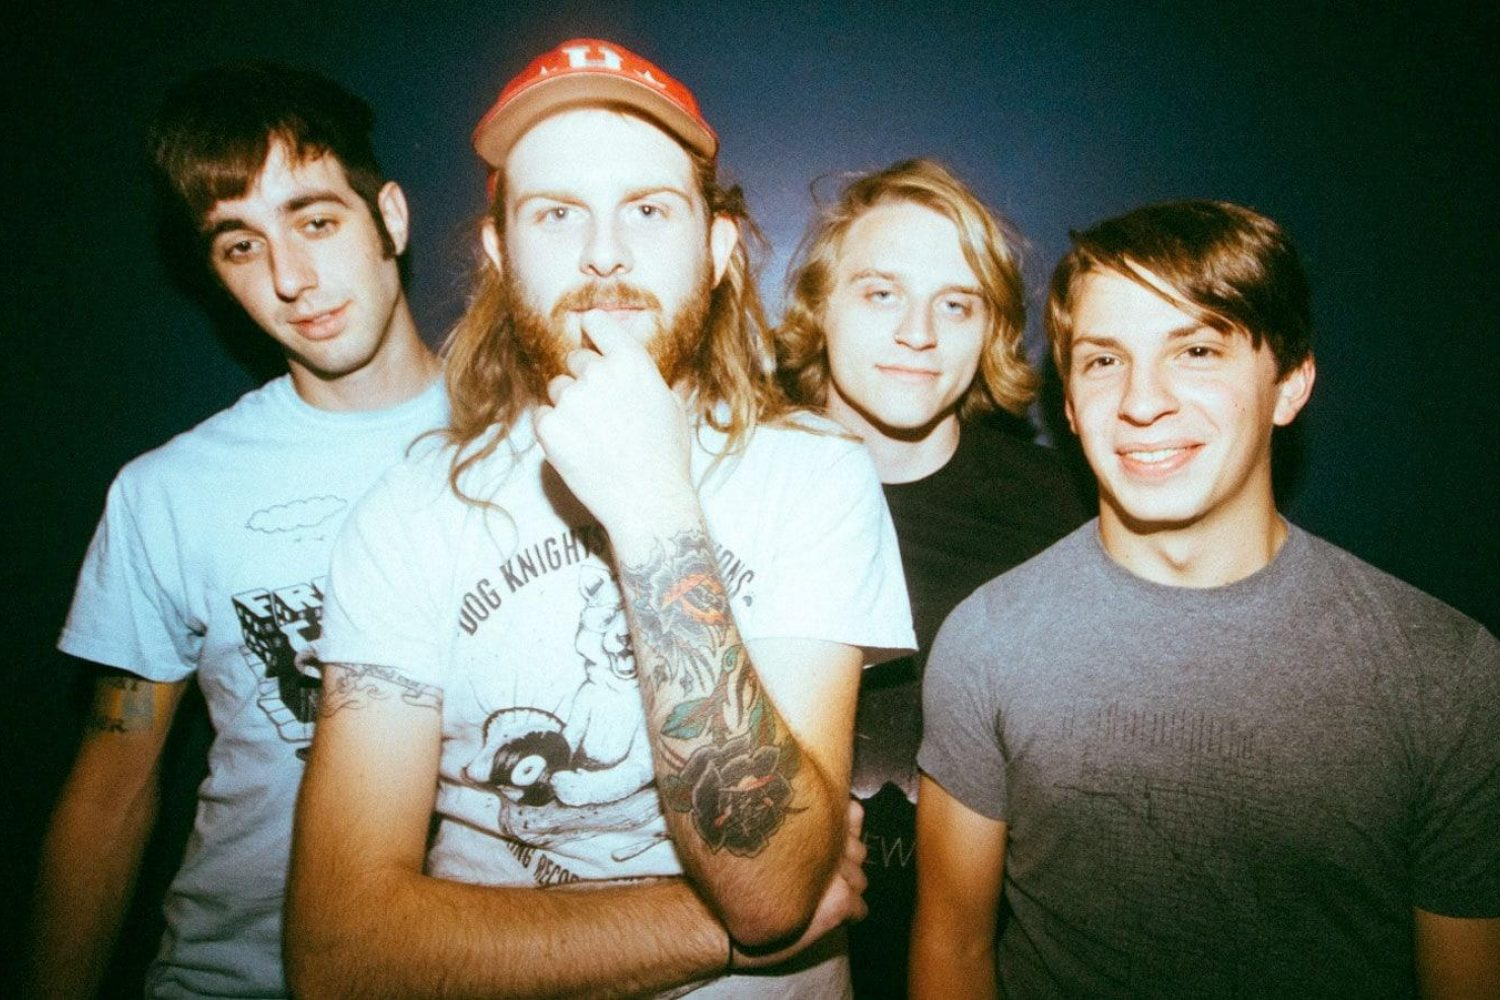 Sorority Noise's Cameron Boucher has shared a brand new solo track